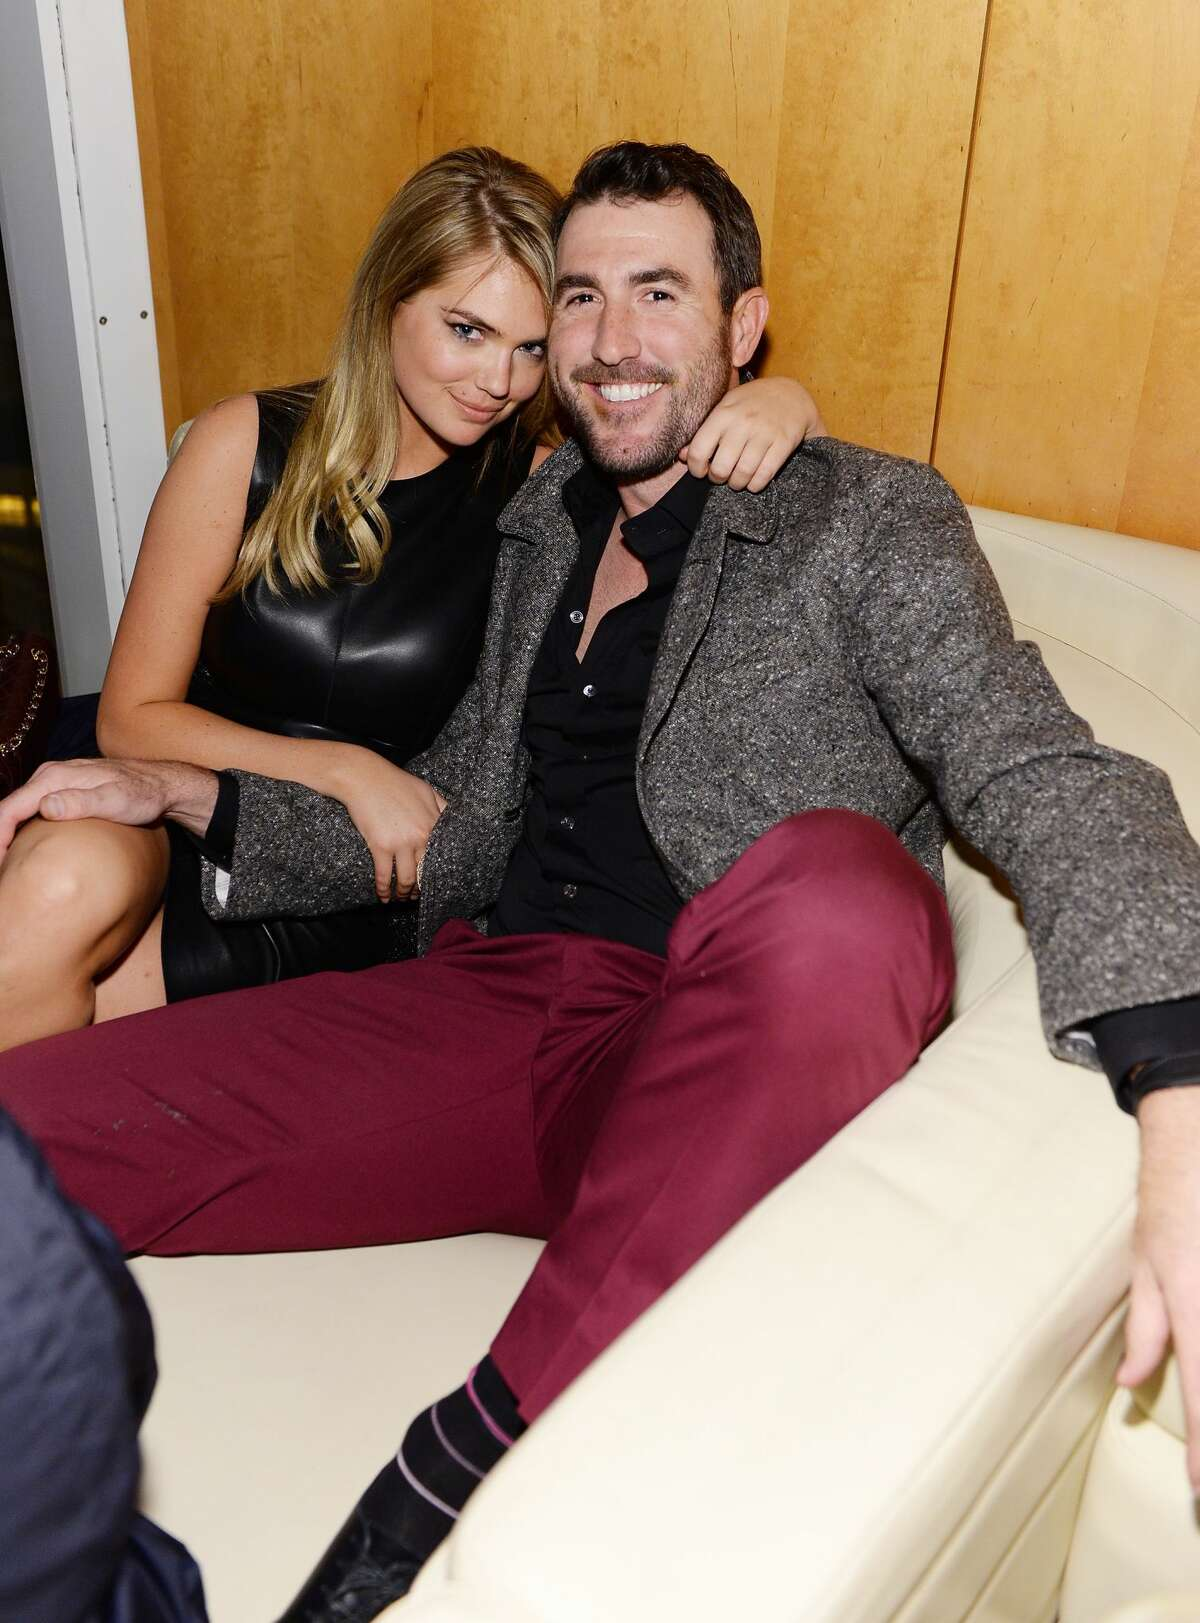 Model Kate Upton and professional baseball player Justin Verlander attend the GQ Super Bowl Party 2014 sponsored by Patron Tequila, Van Heusen, and Miller Fortune on January 31, 2014 in New York City.